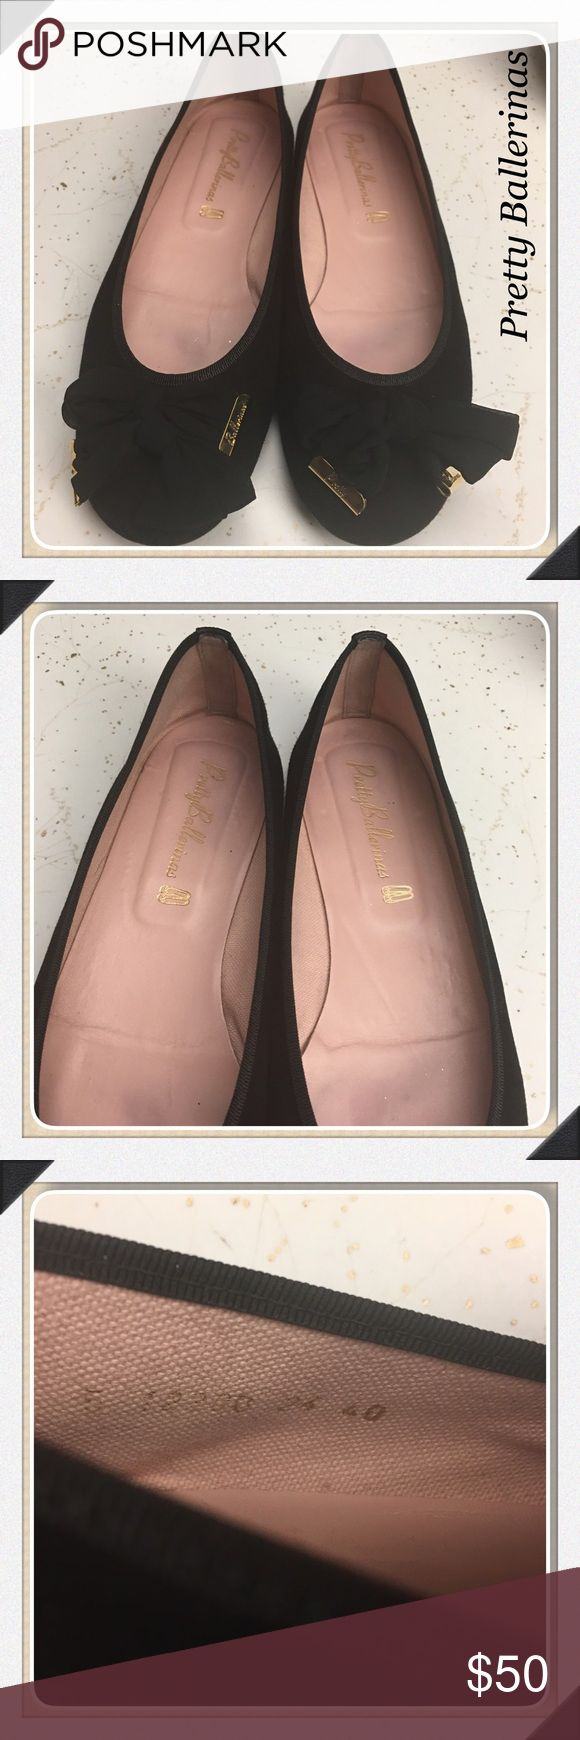 Pretty Ballerinas Black Suede Gold Accent Size 40 Excellent pre-loved condition! Pretty Ballerinas Shoes Flats & Loafers